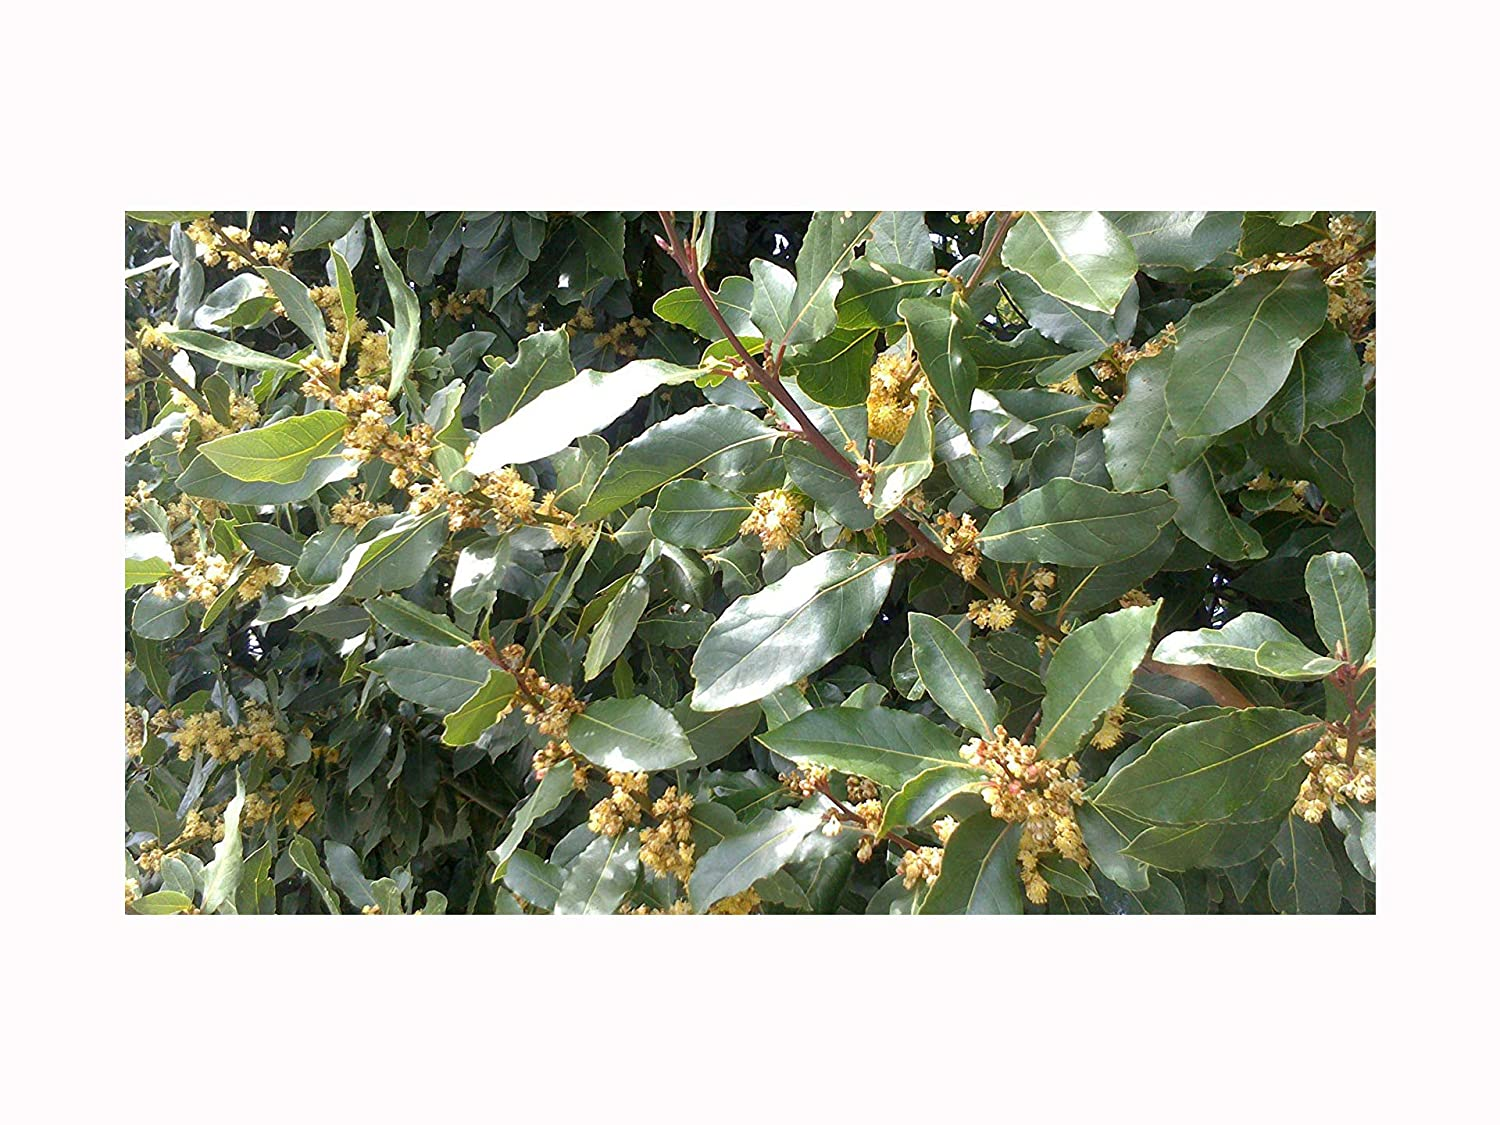 BAY LAUREL Laurus nobilis 1 year old strong plant in 7cm pot -evergreen tree with aromatic leaves